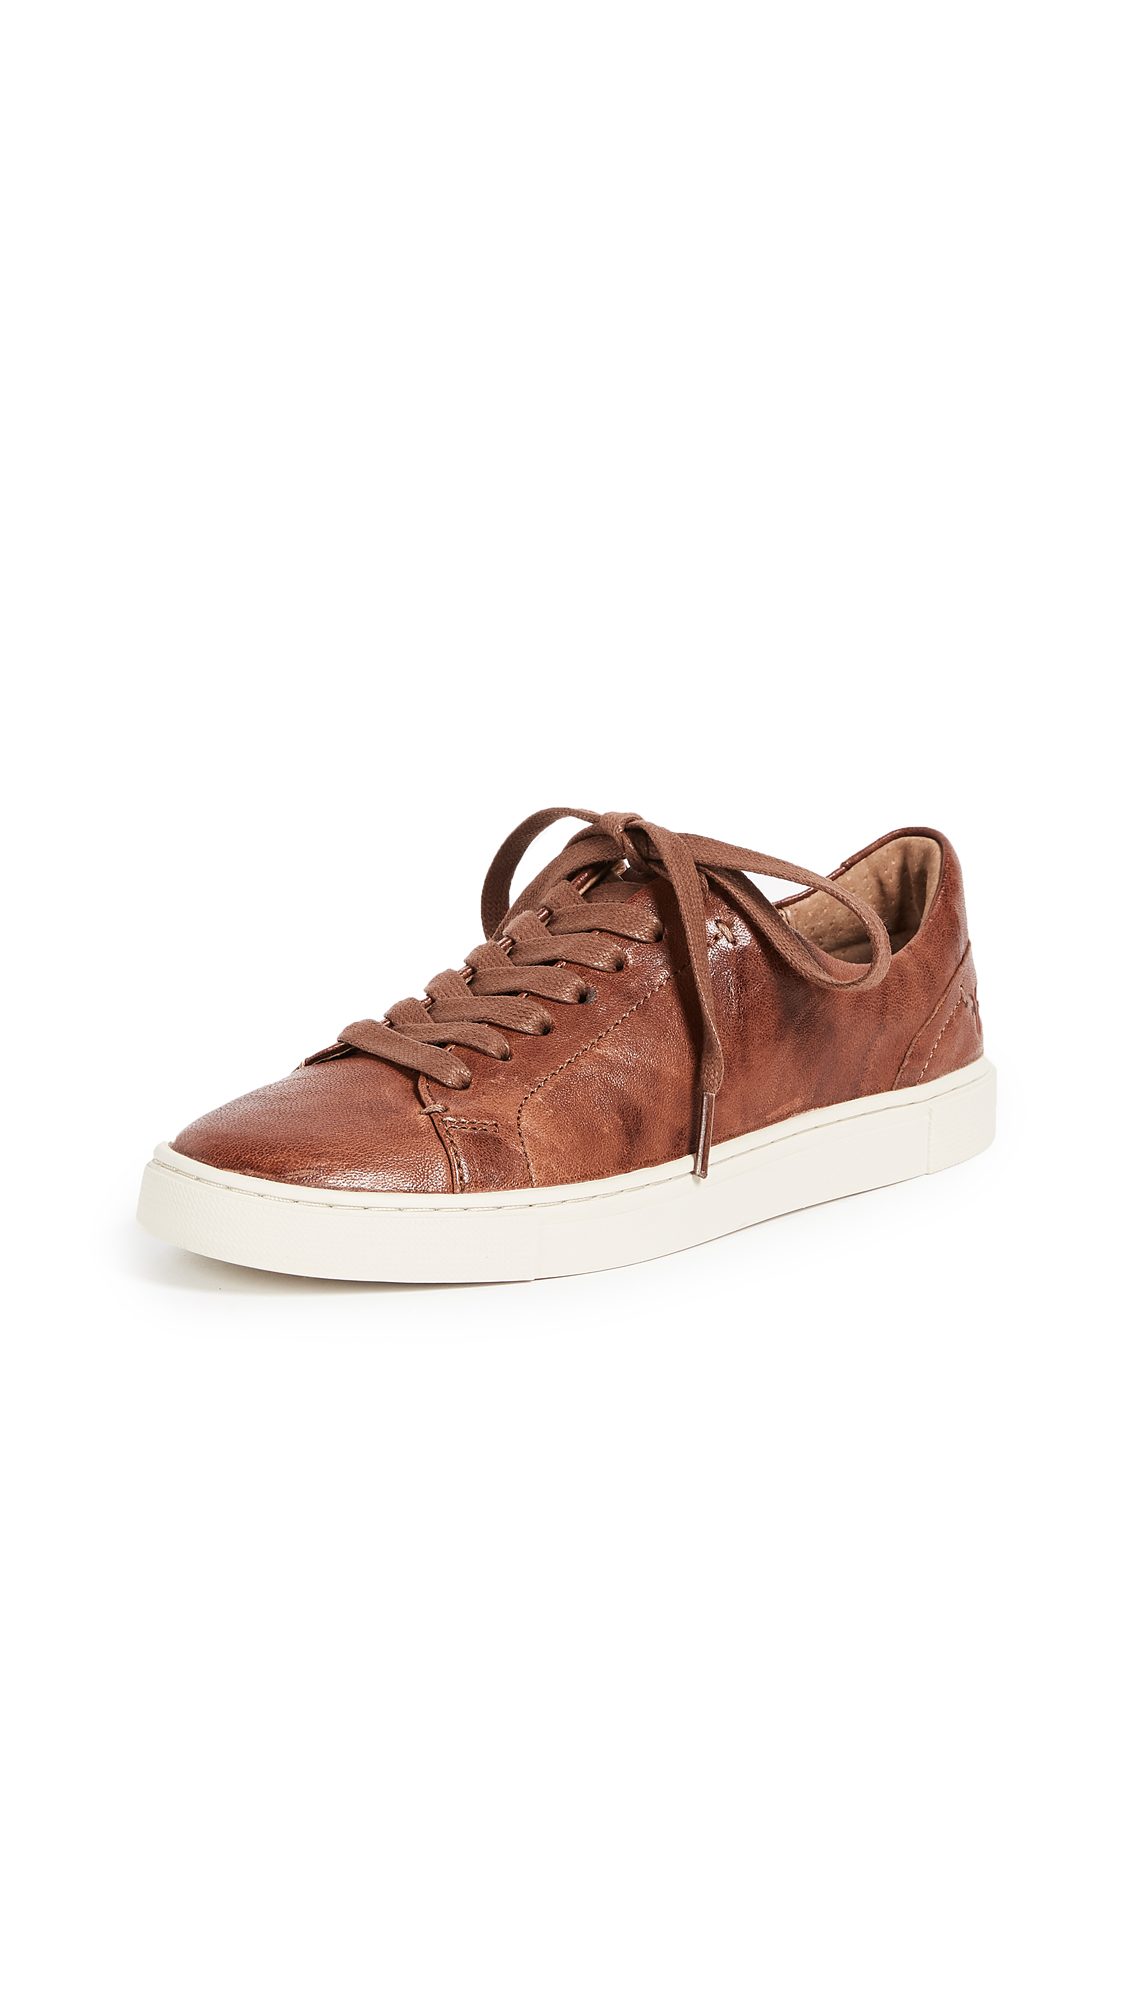 Frye Ivy Low Lace Sneakers - Cognac